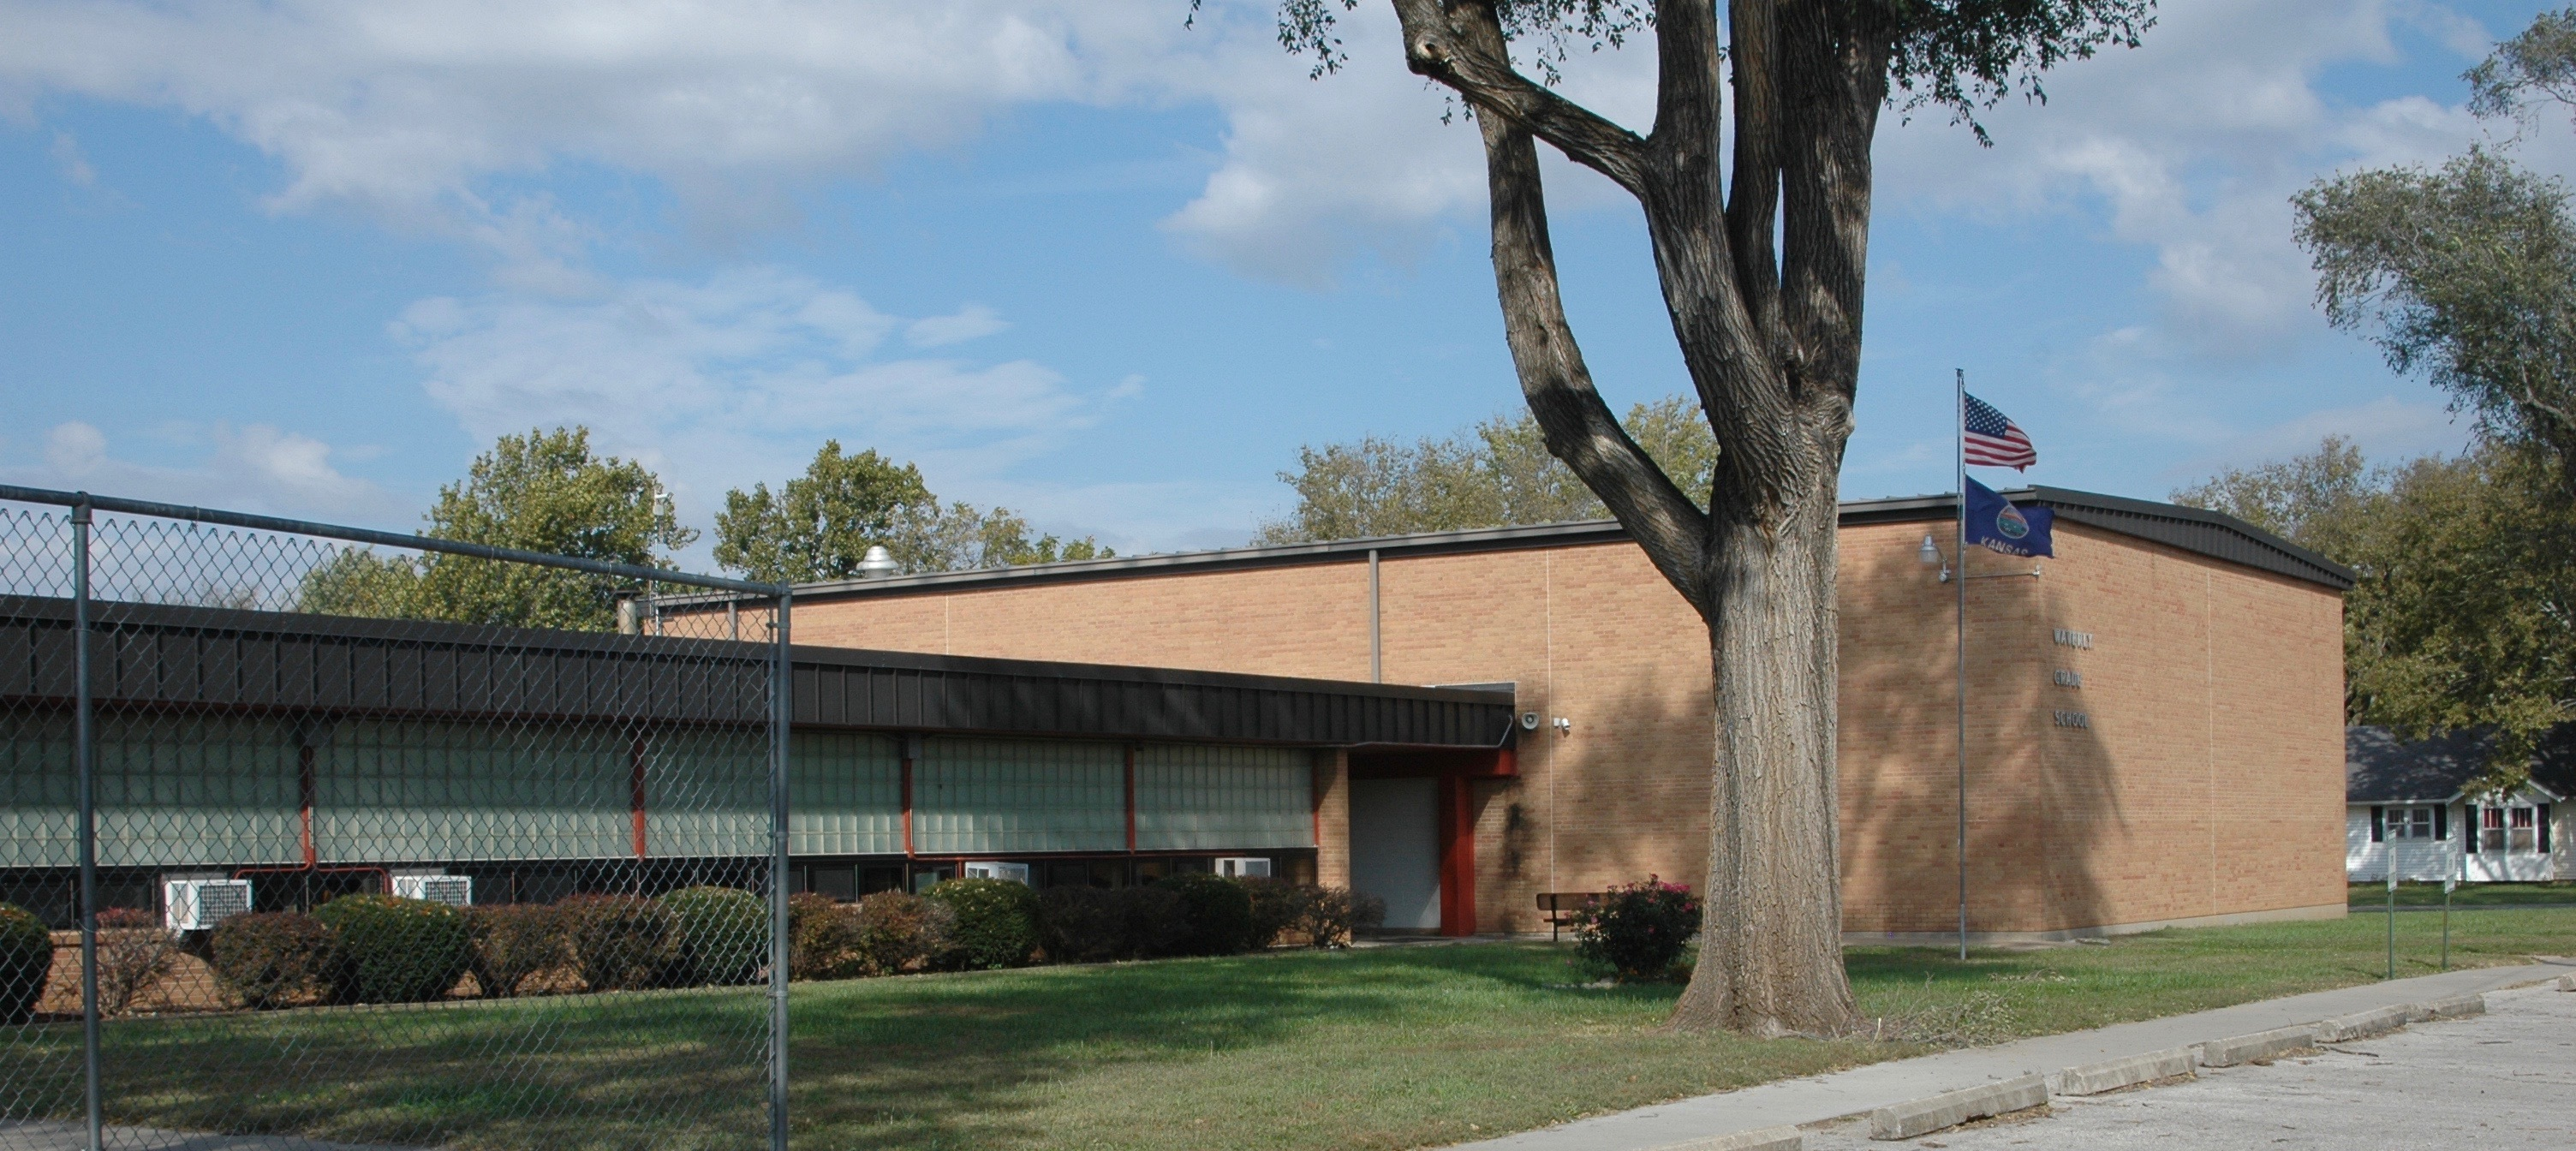 Picture of Waverly Elem. School